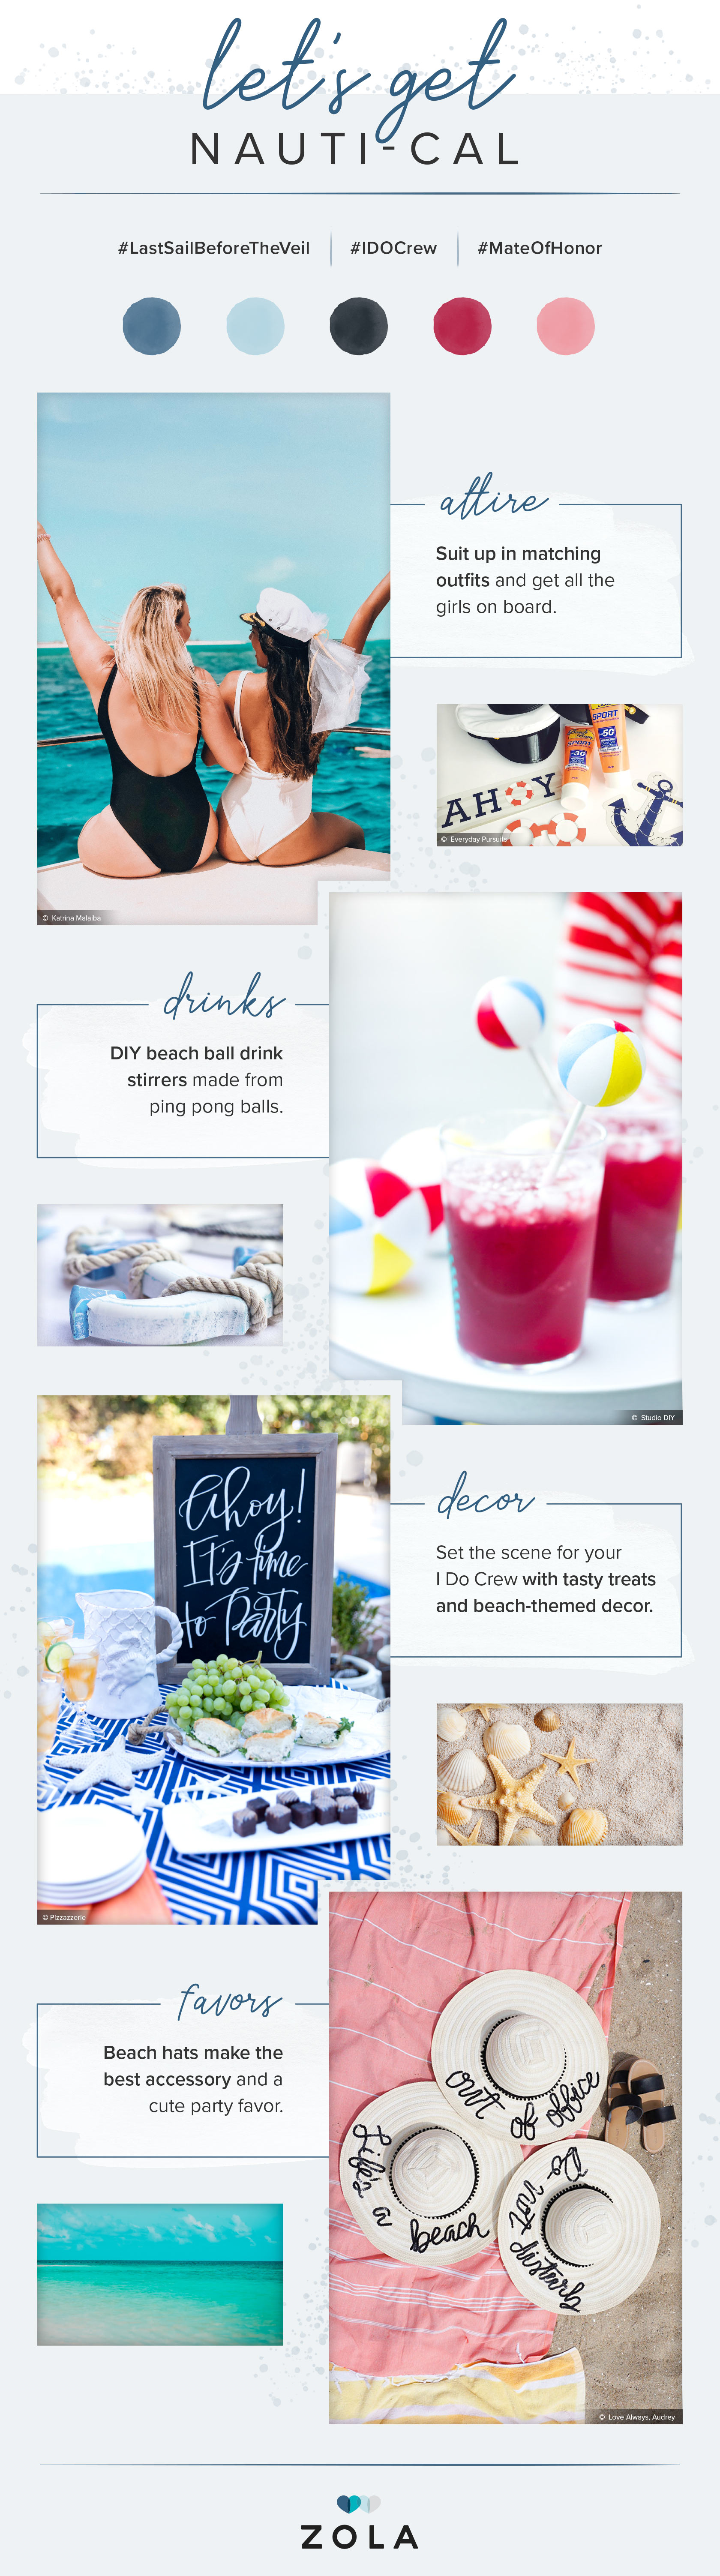 bachelorette-party-ideas-nautical